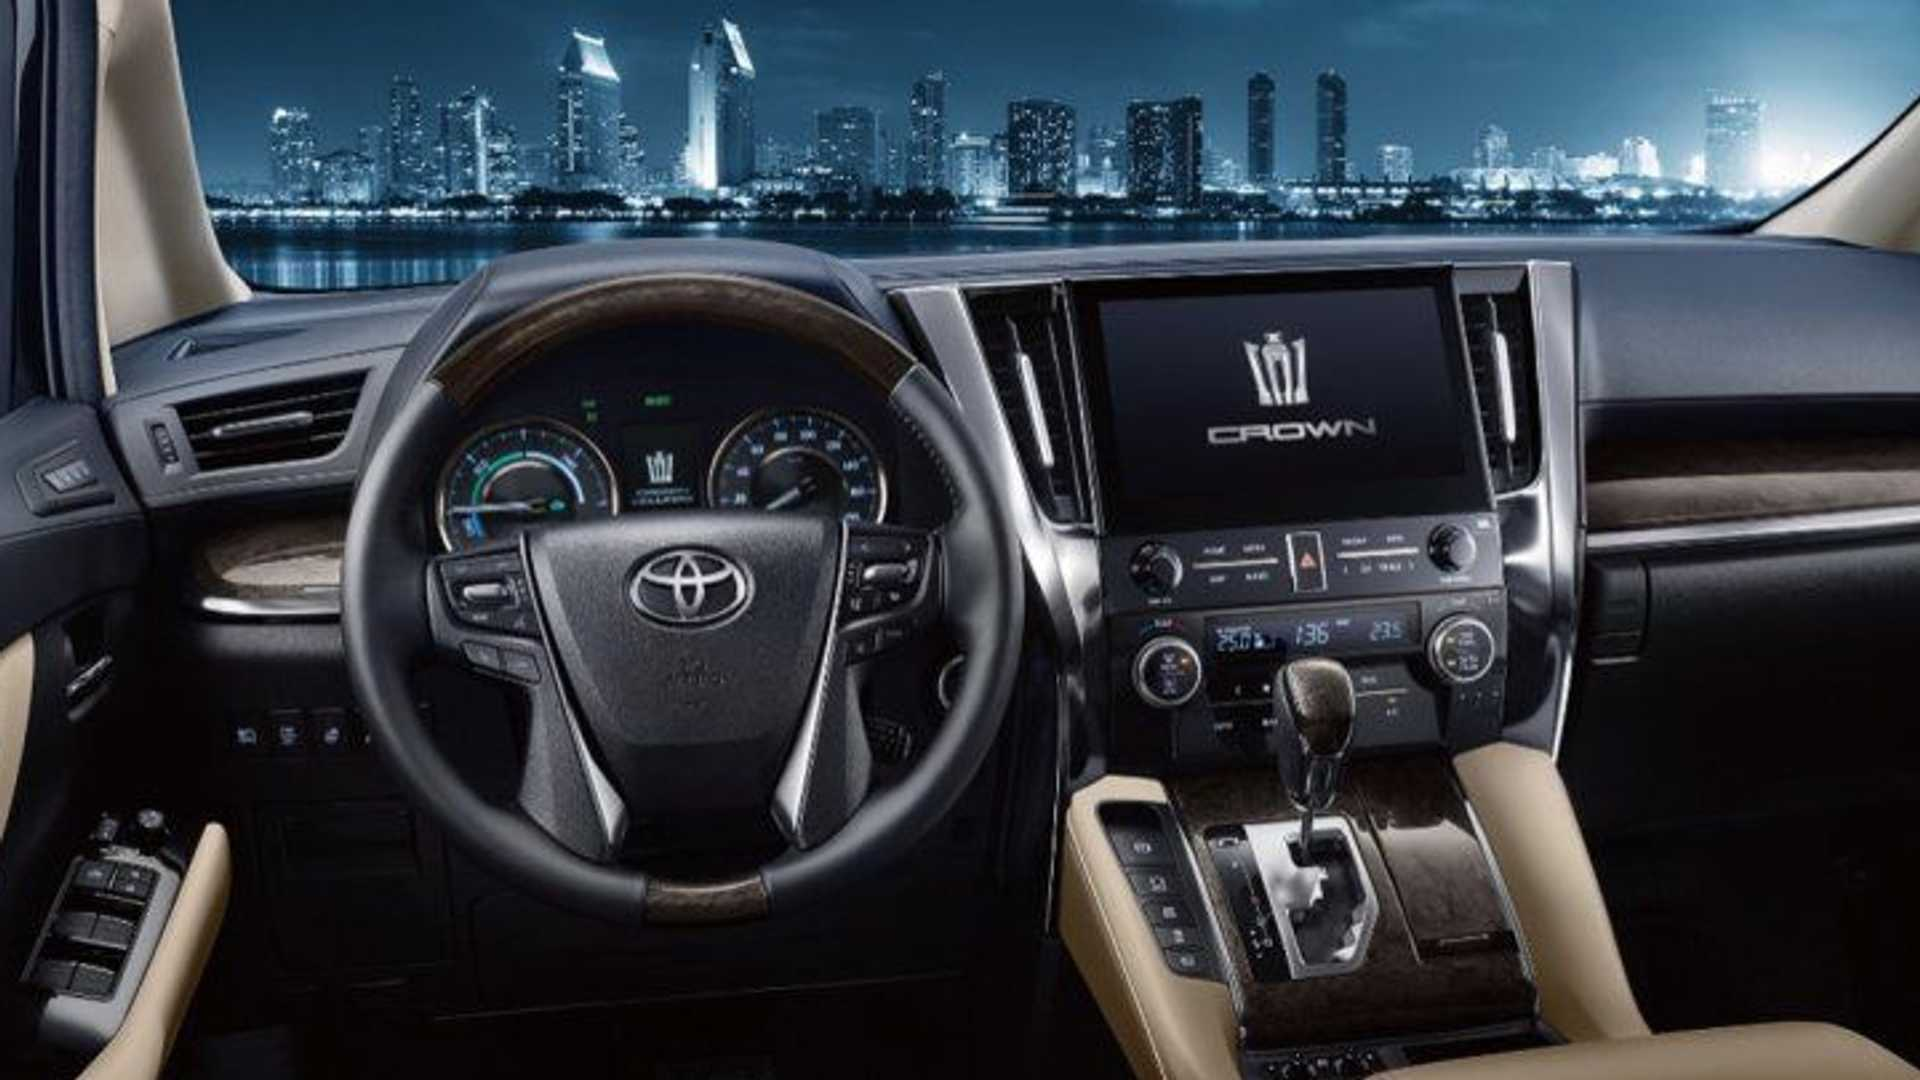 2021_Toyota_Crown_Vellfire-0002